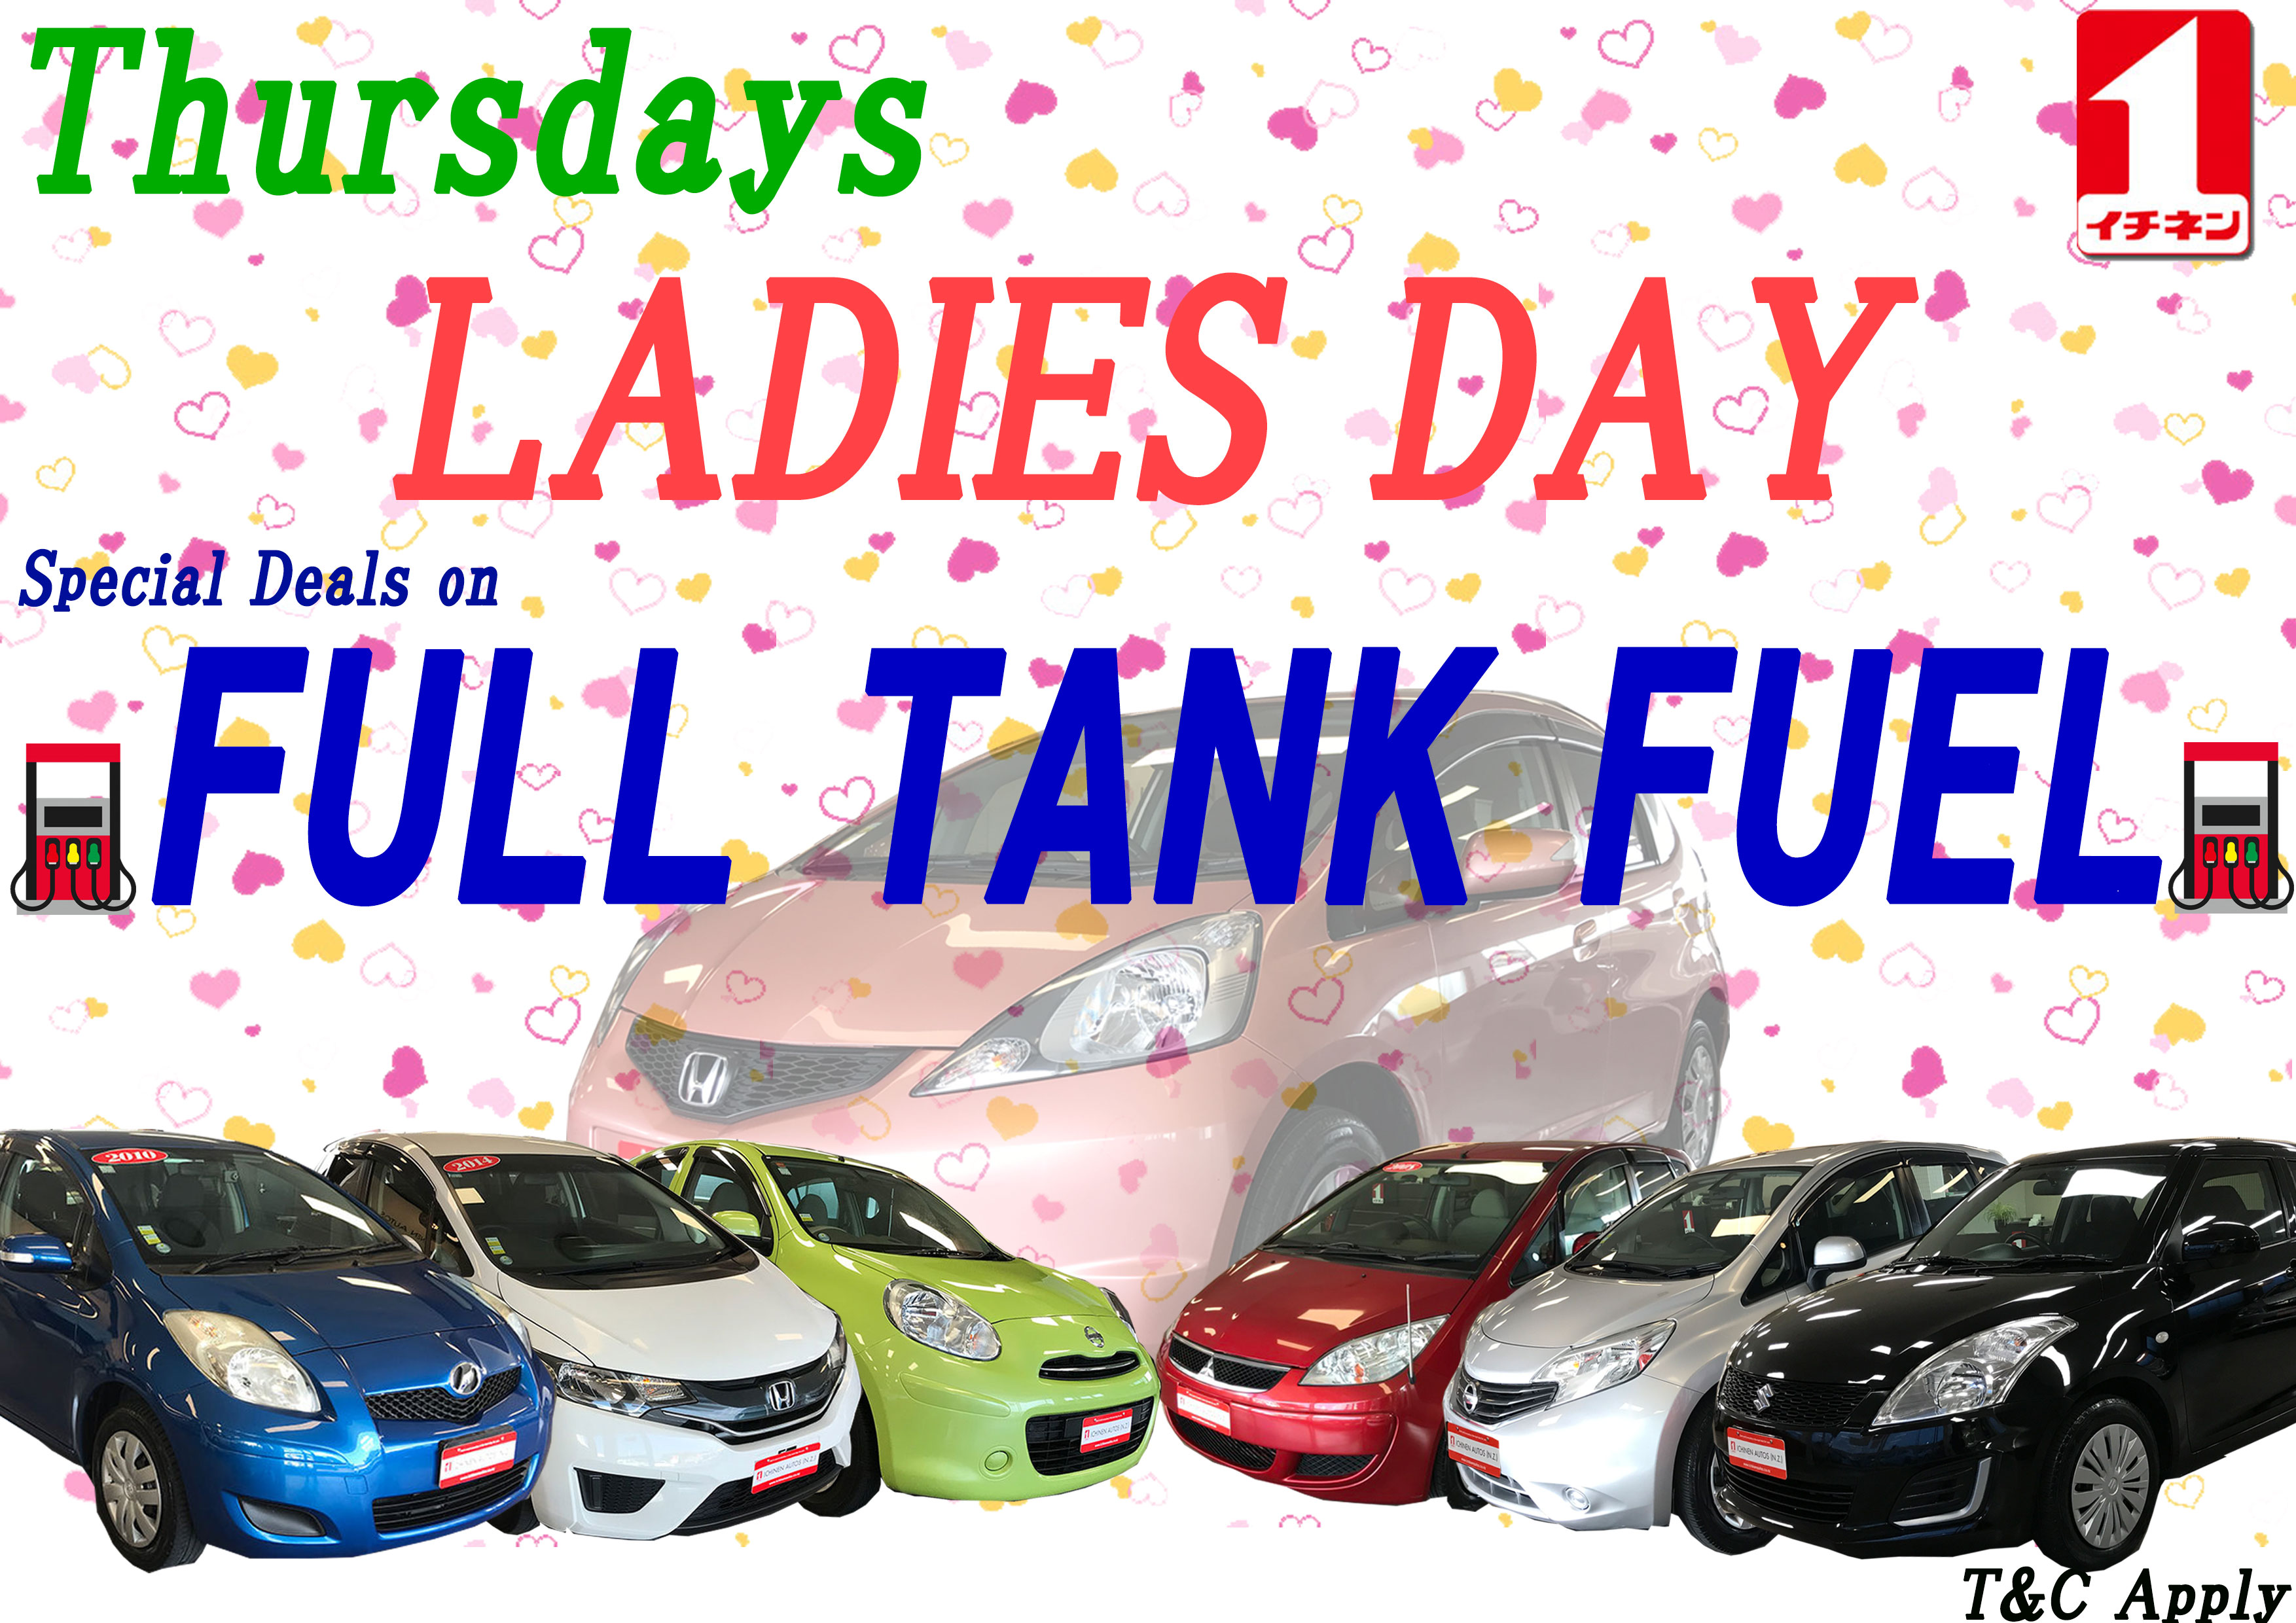 ♪\LADIES FULL TANK THURSDAY/♪